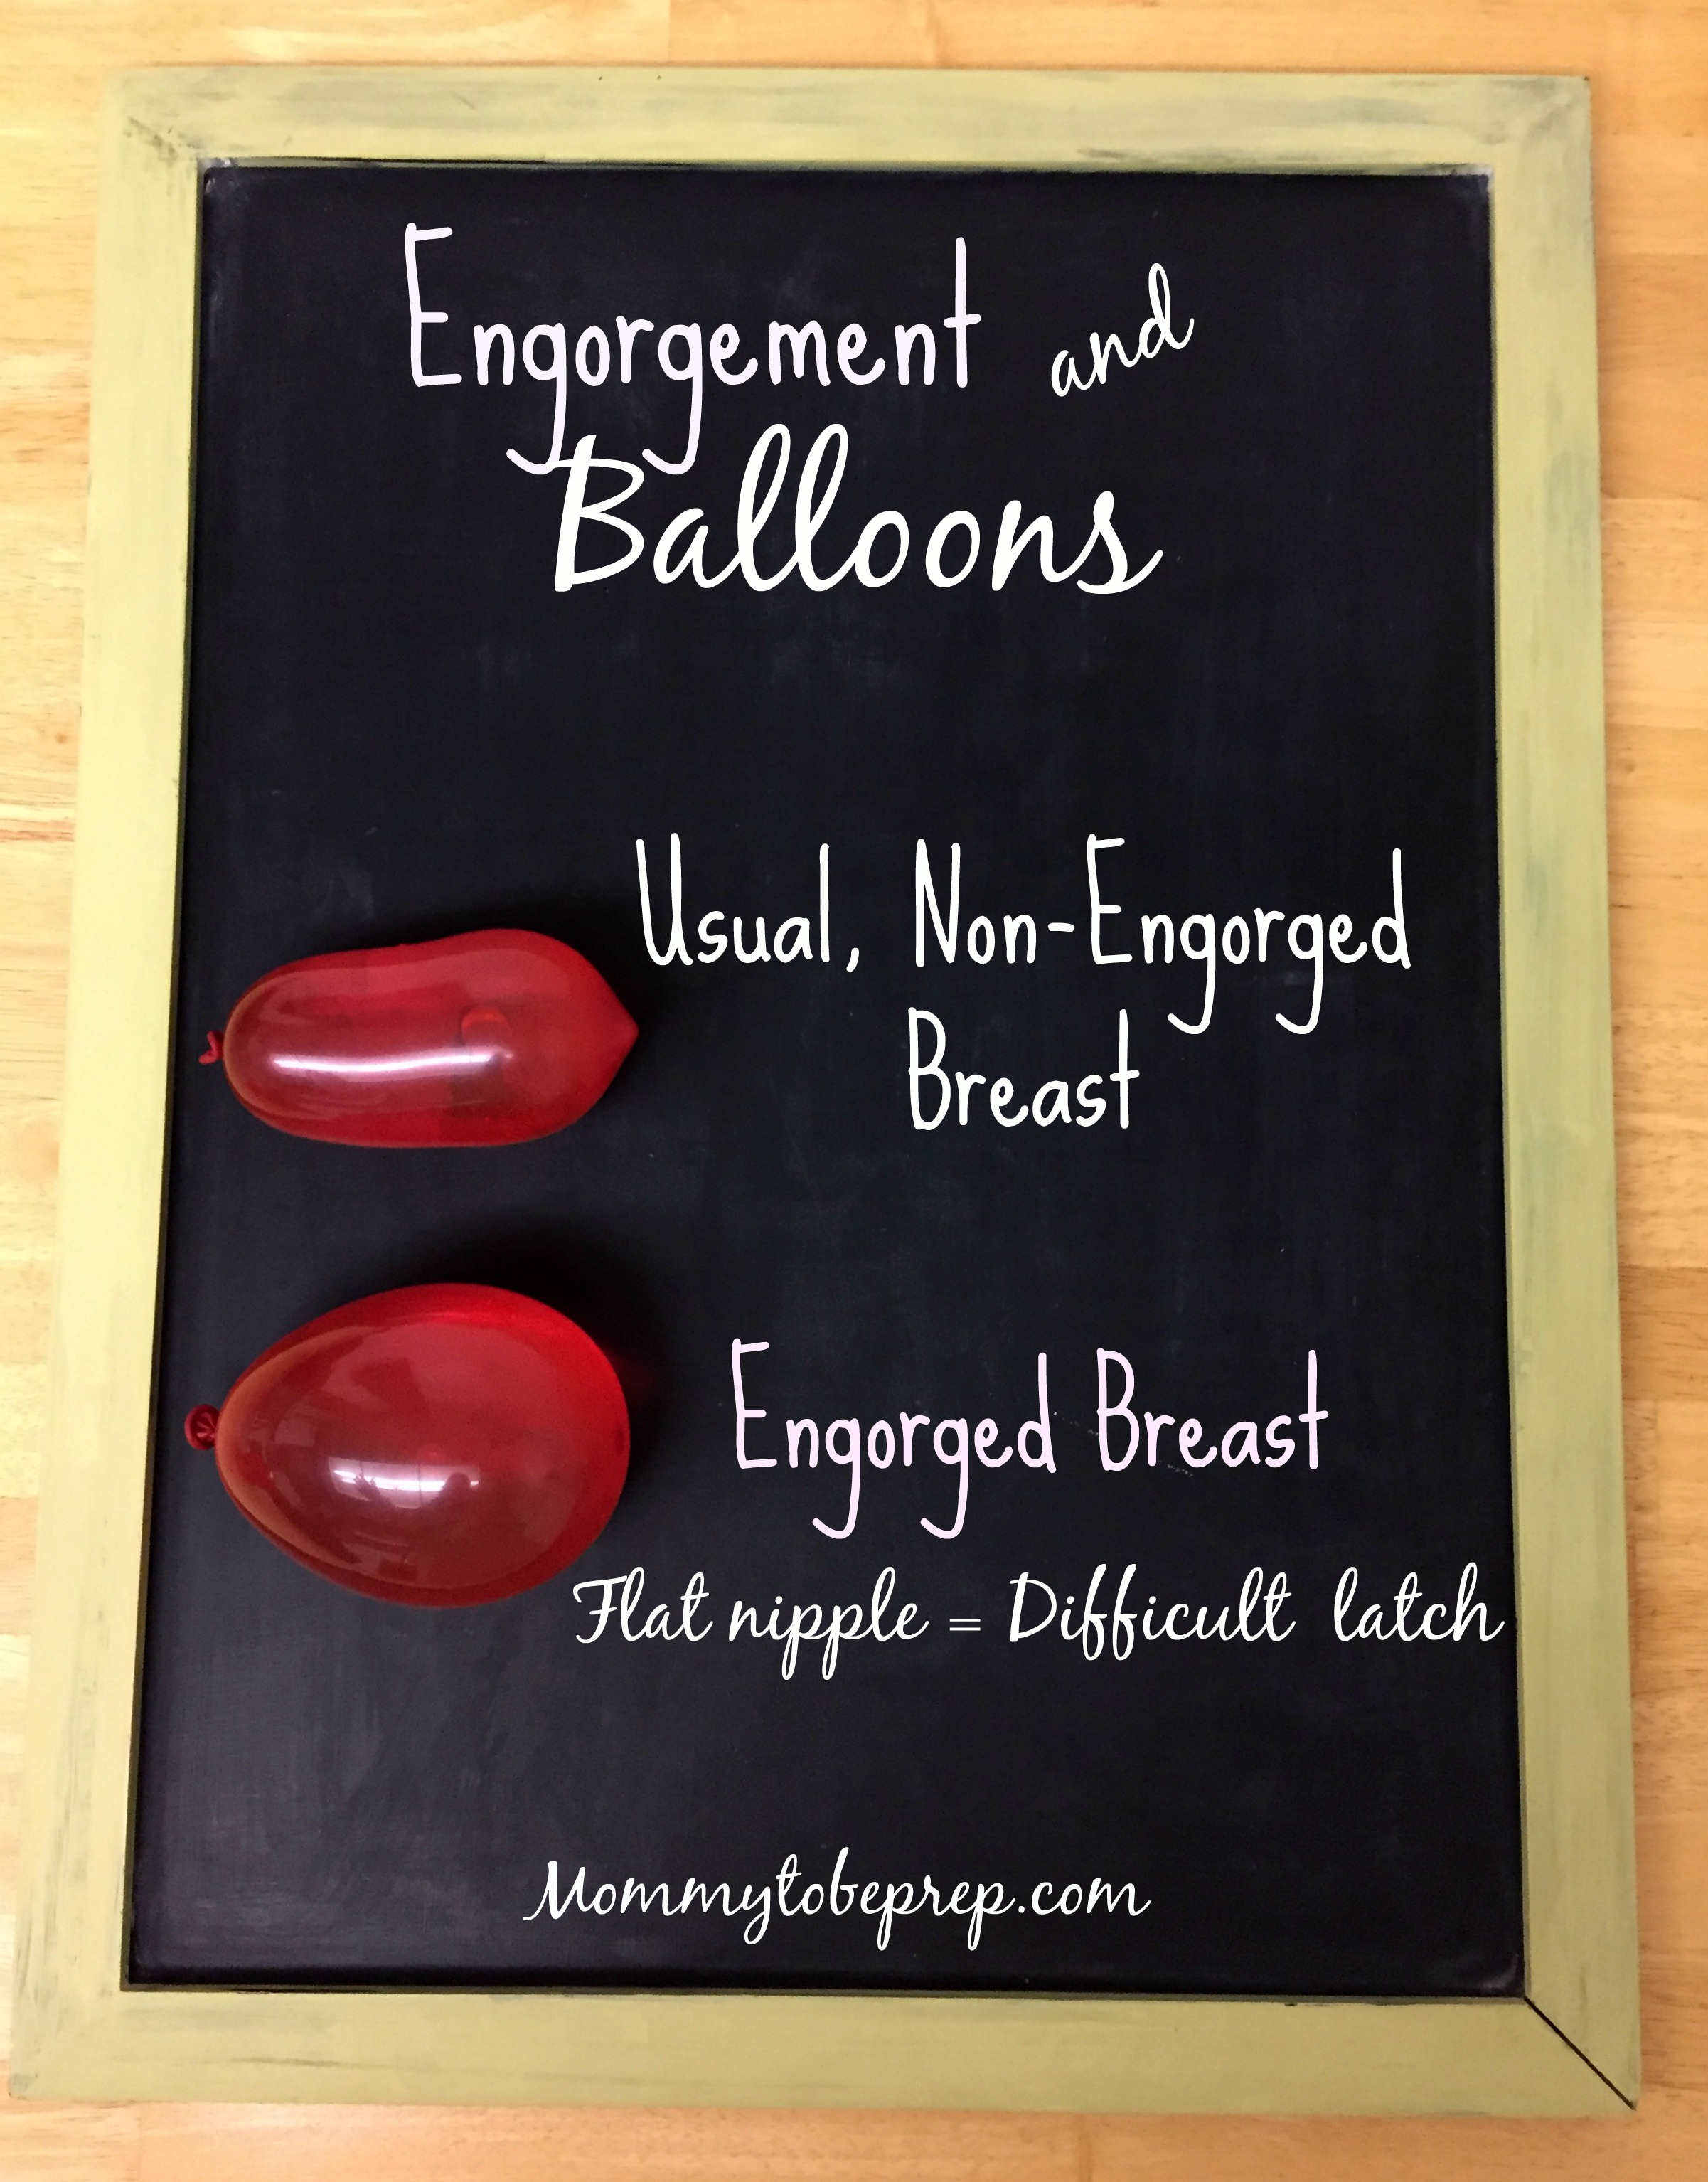 engorgement and balloons